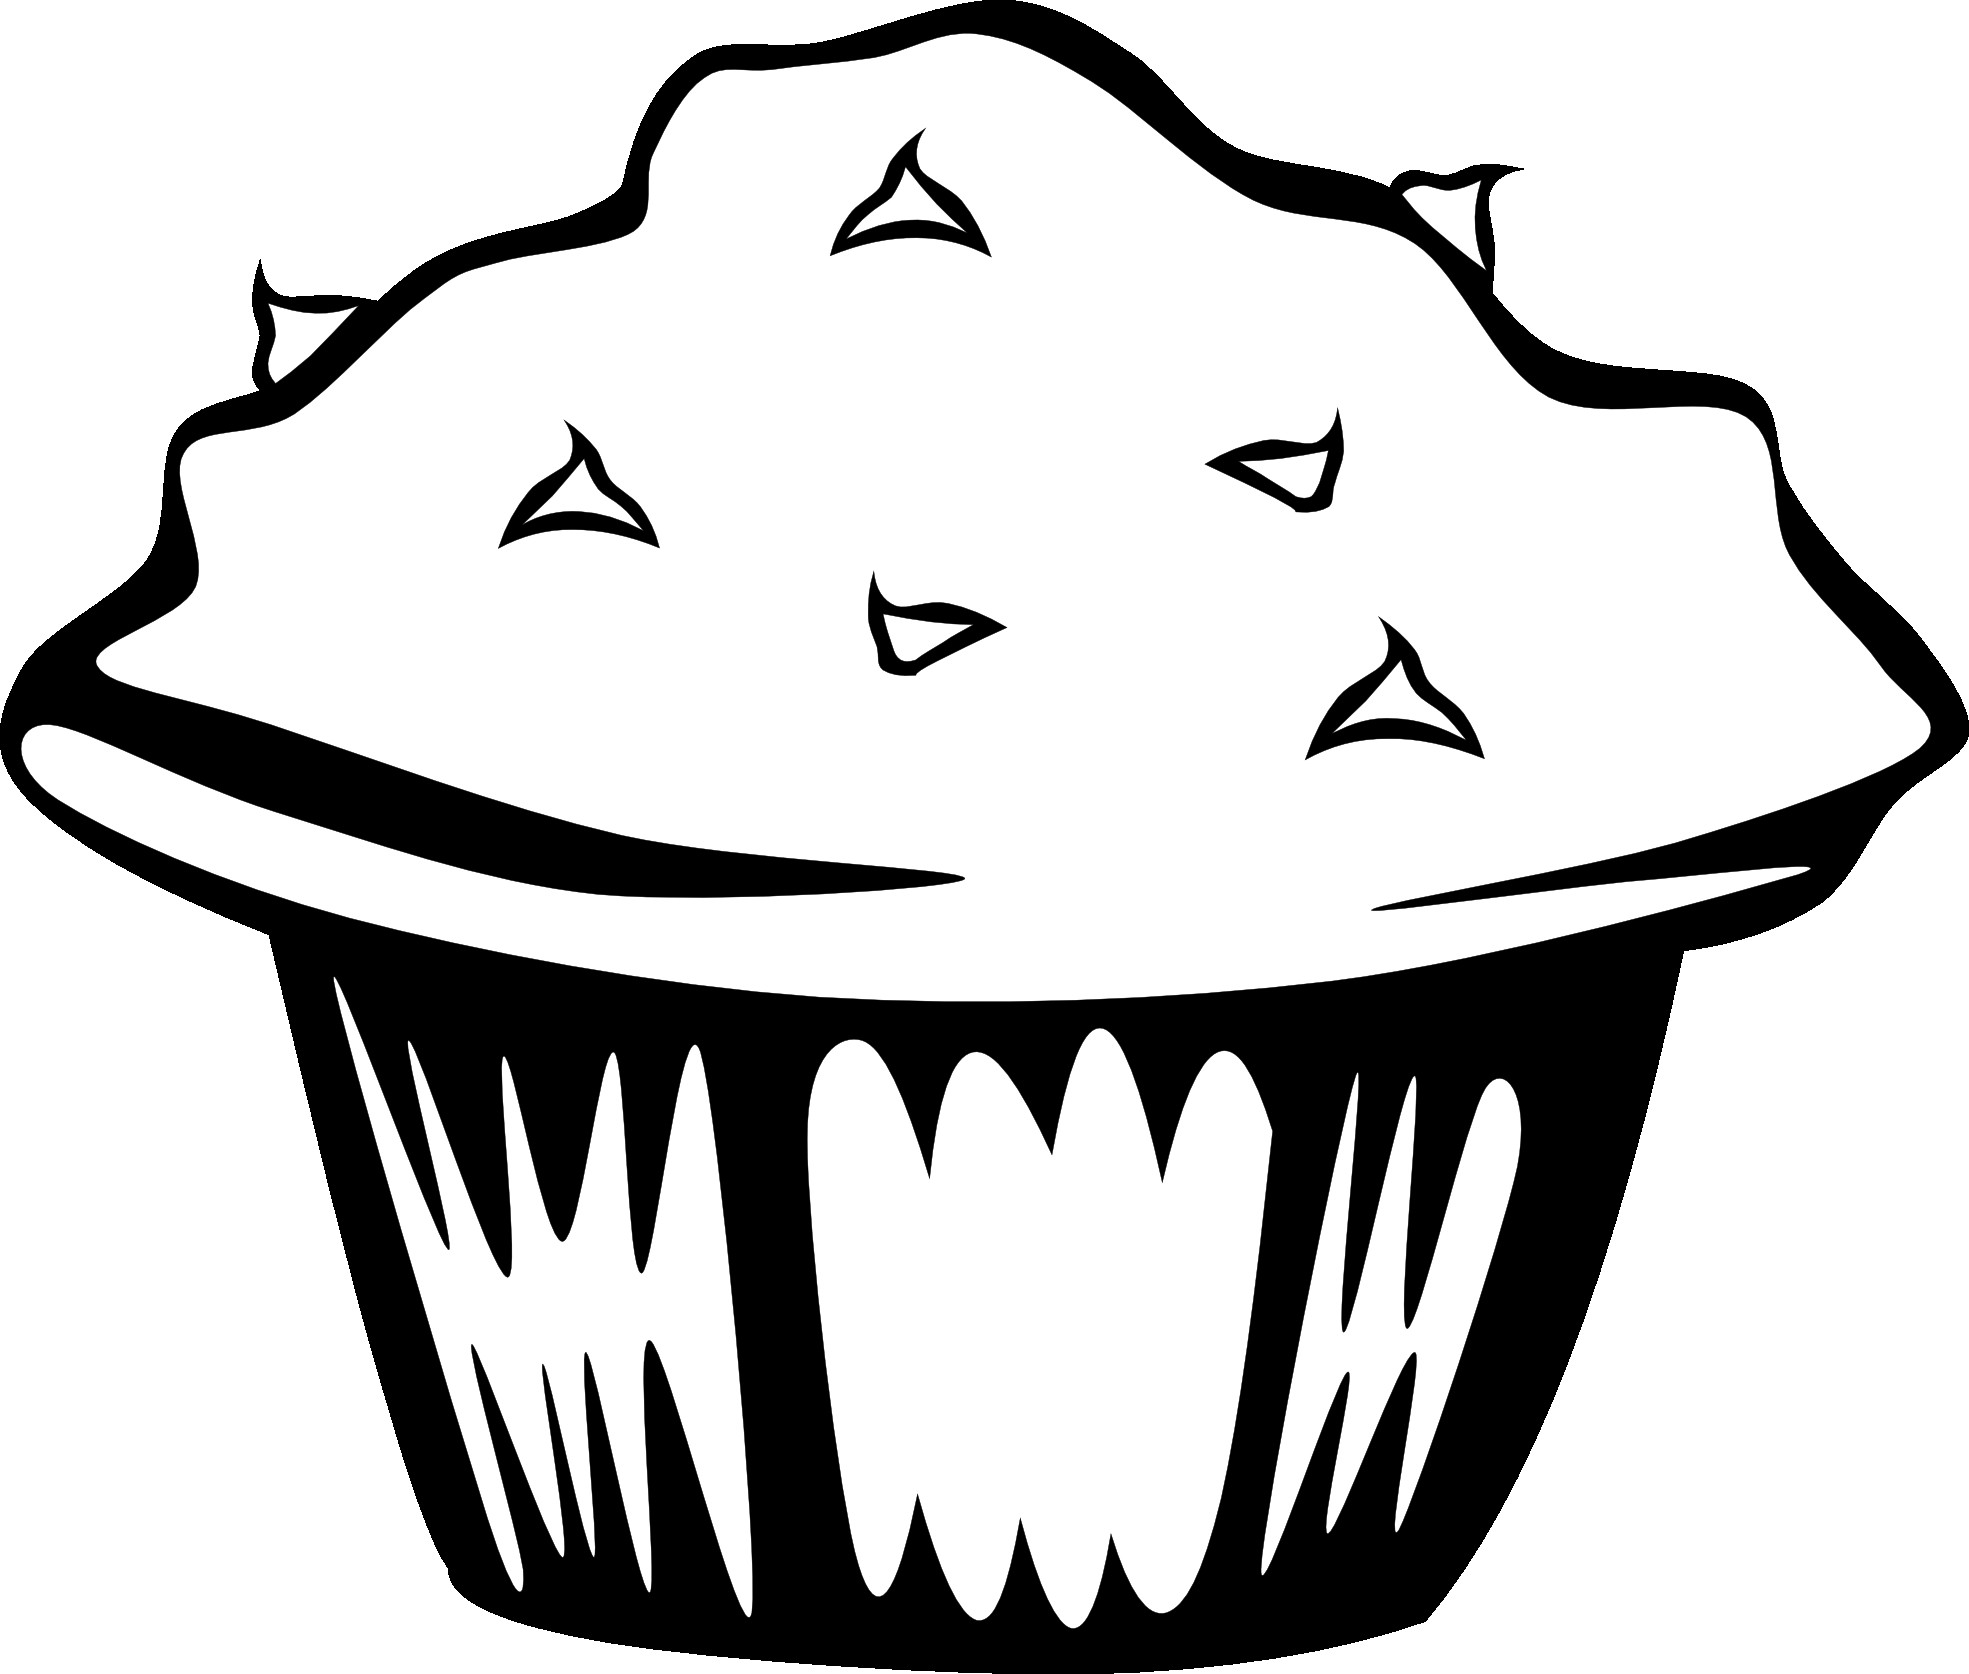 free black white food clipart images - photo #30